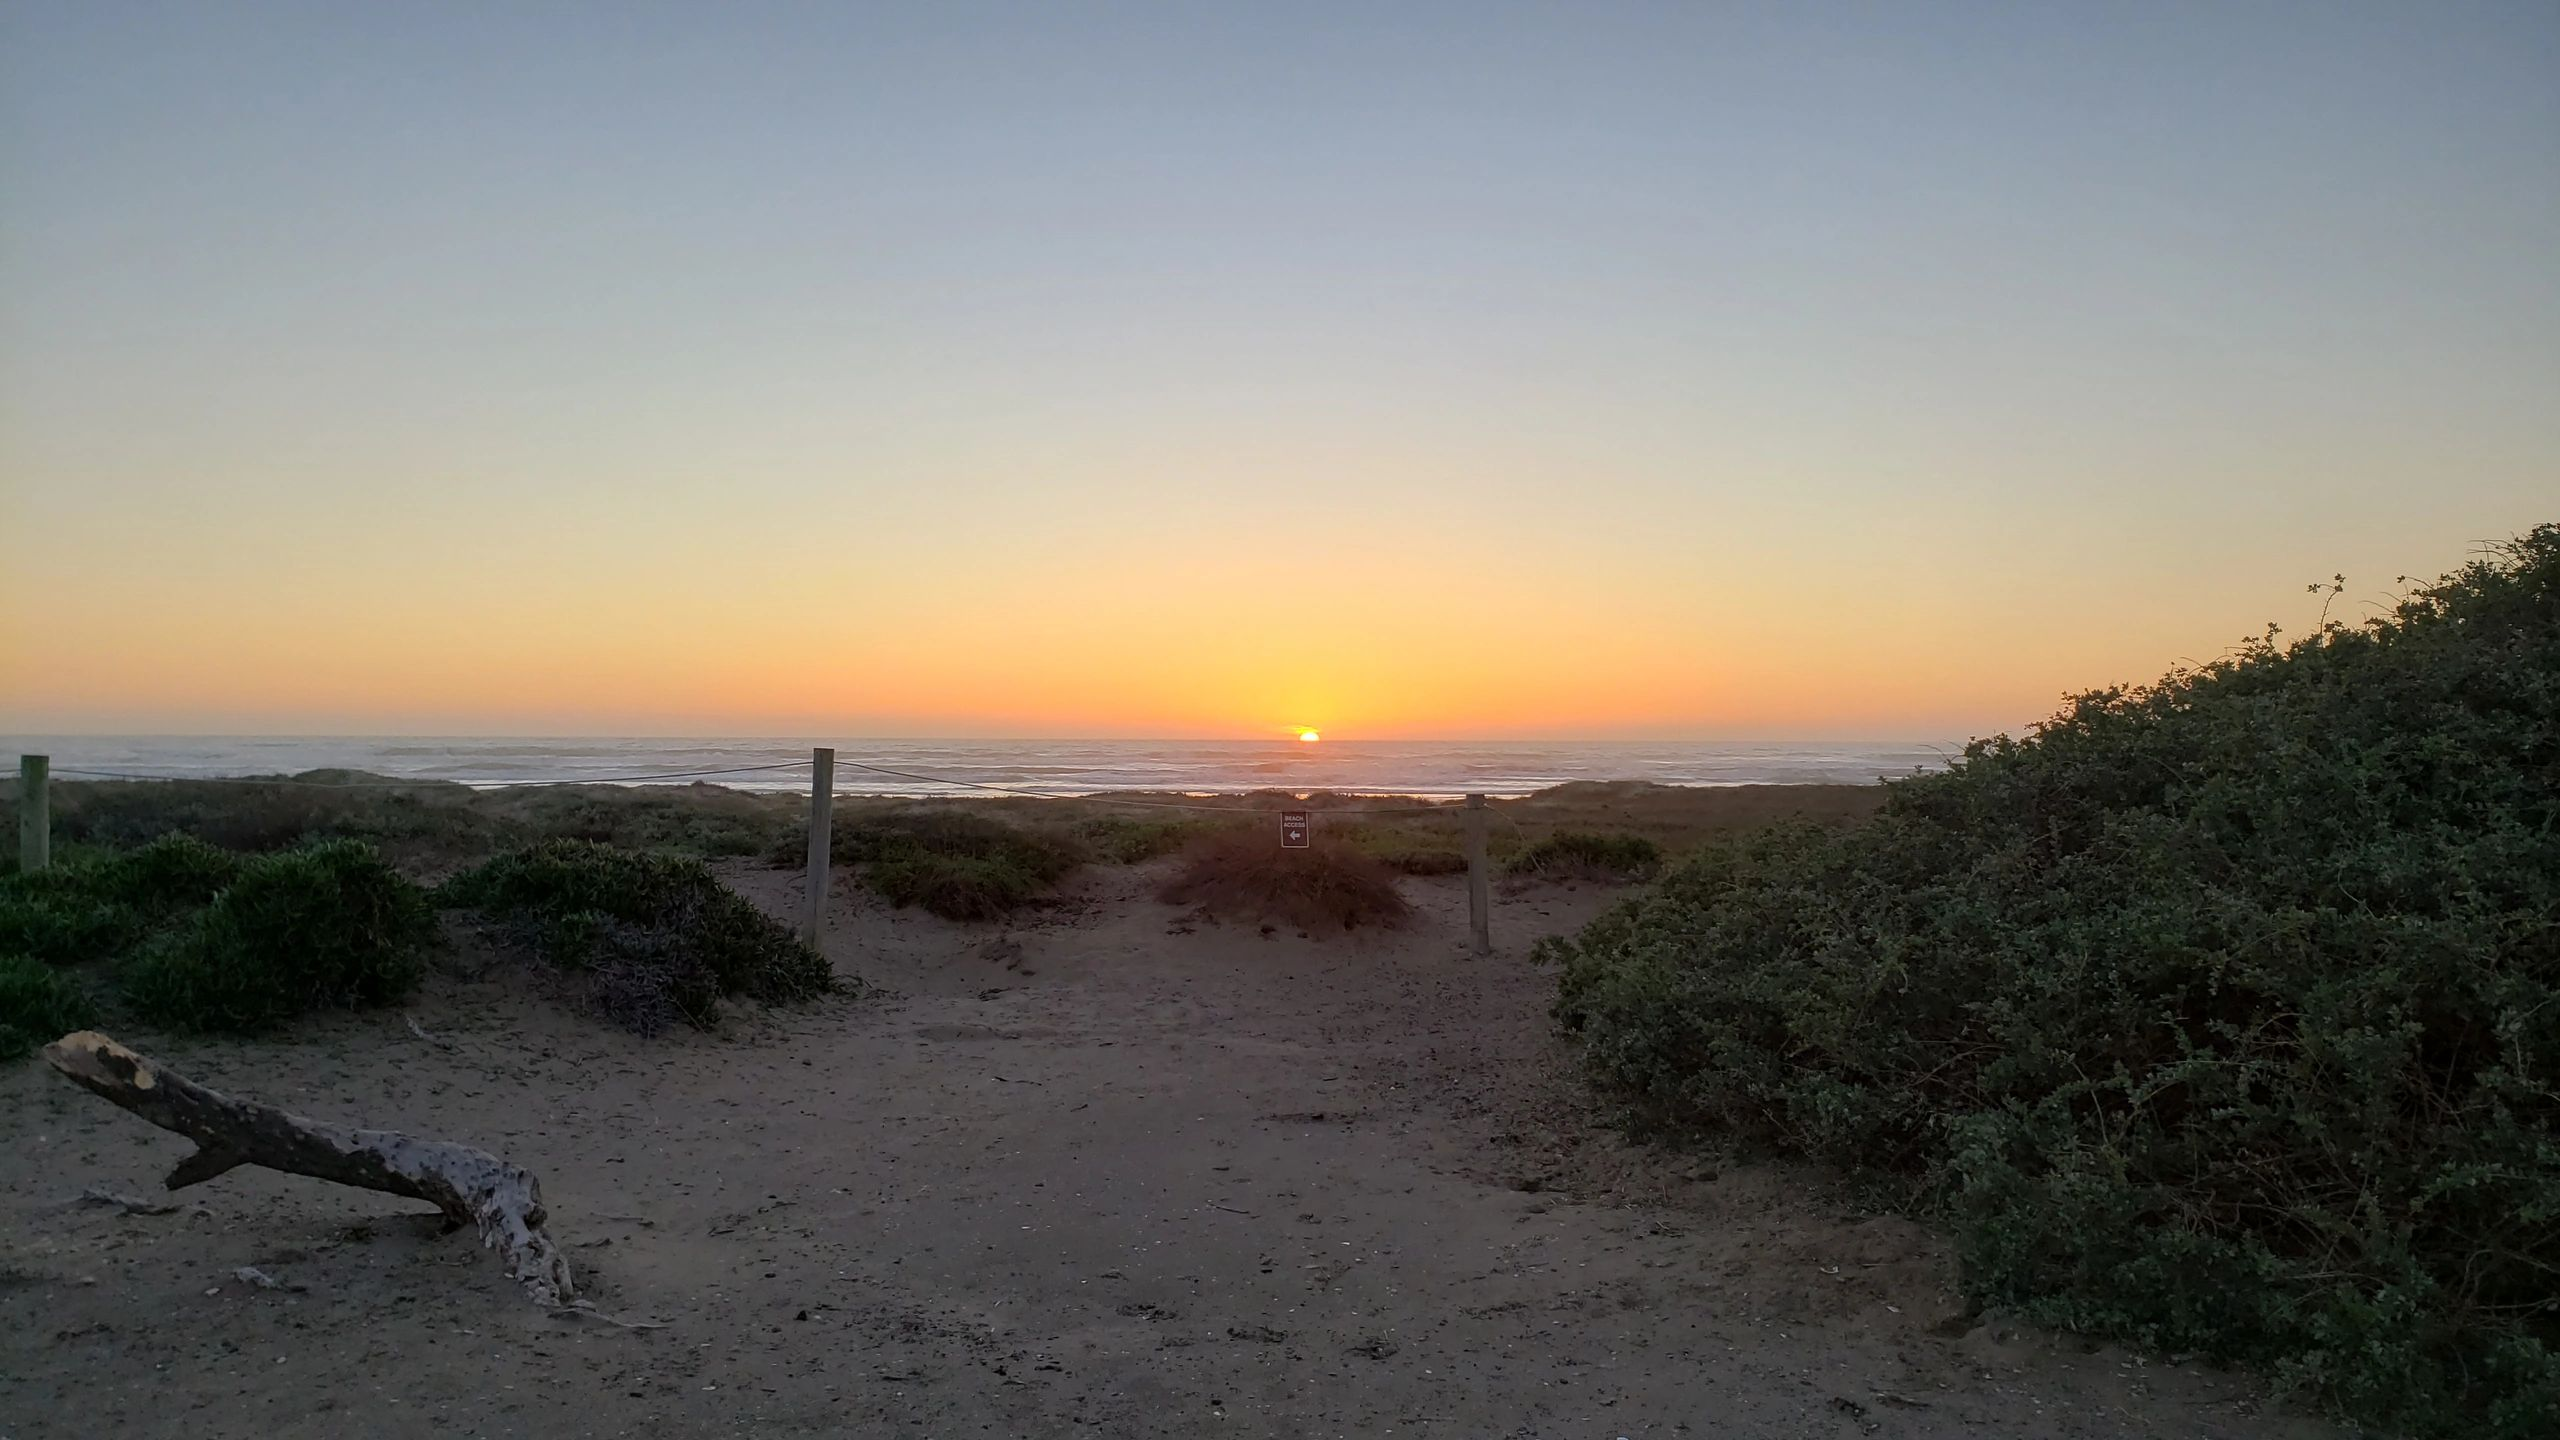 Carpinteria State Beach sunset from RV full hook -ups at beach front site 376.  Photo by Debi